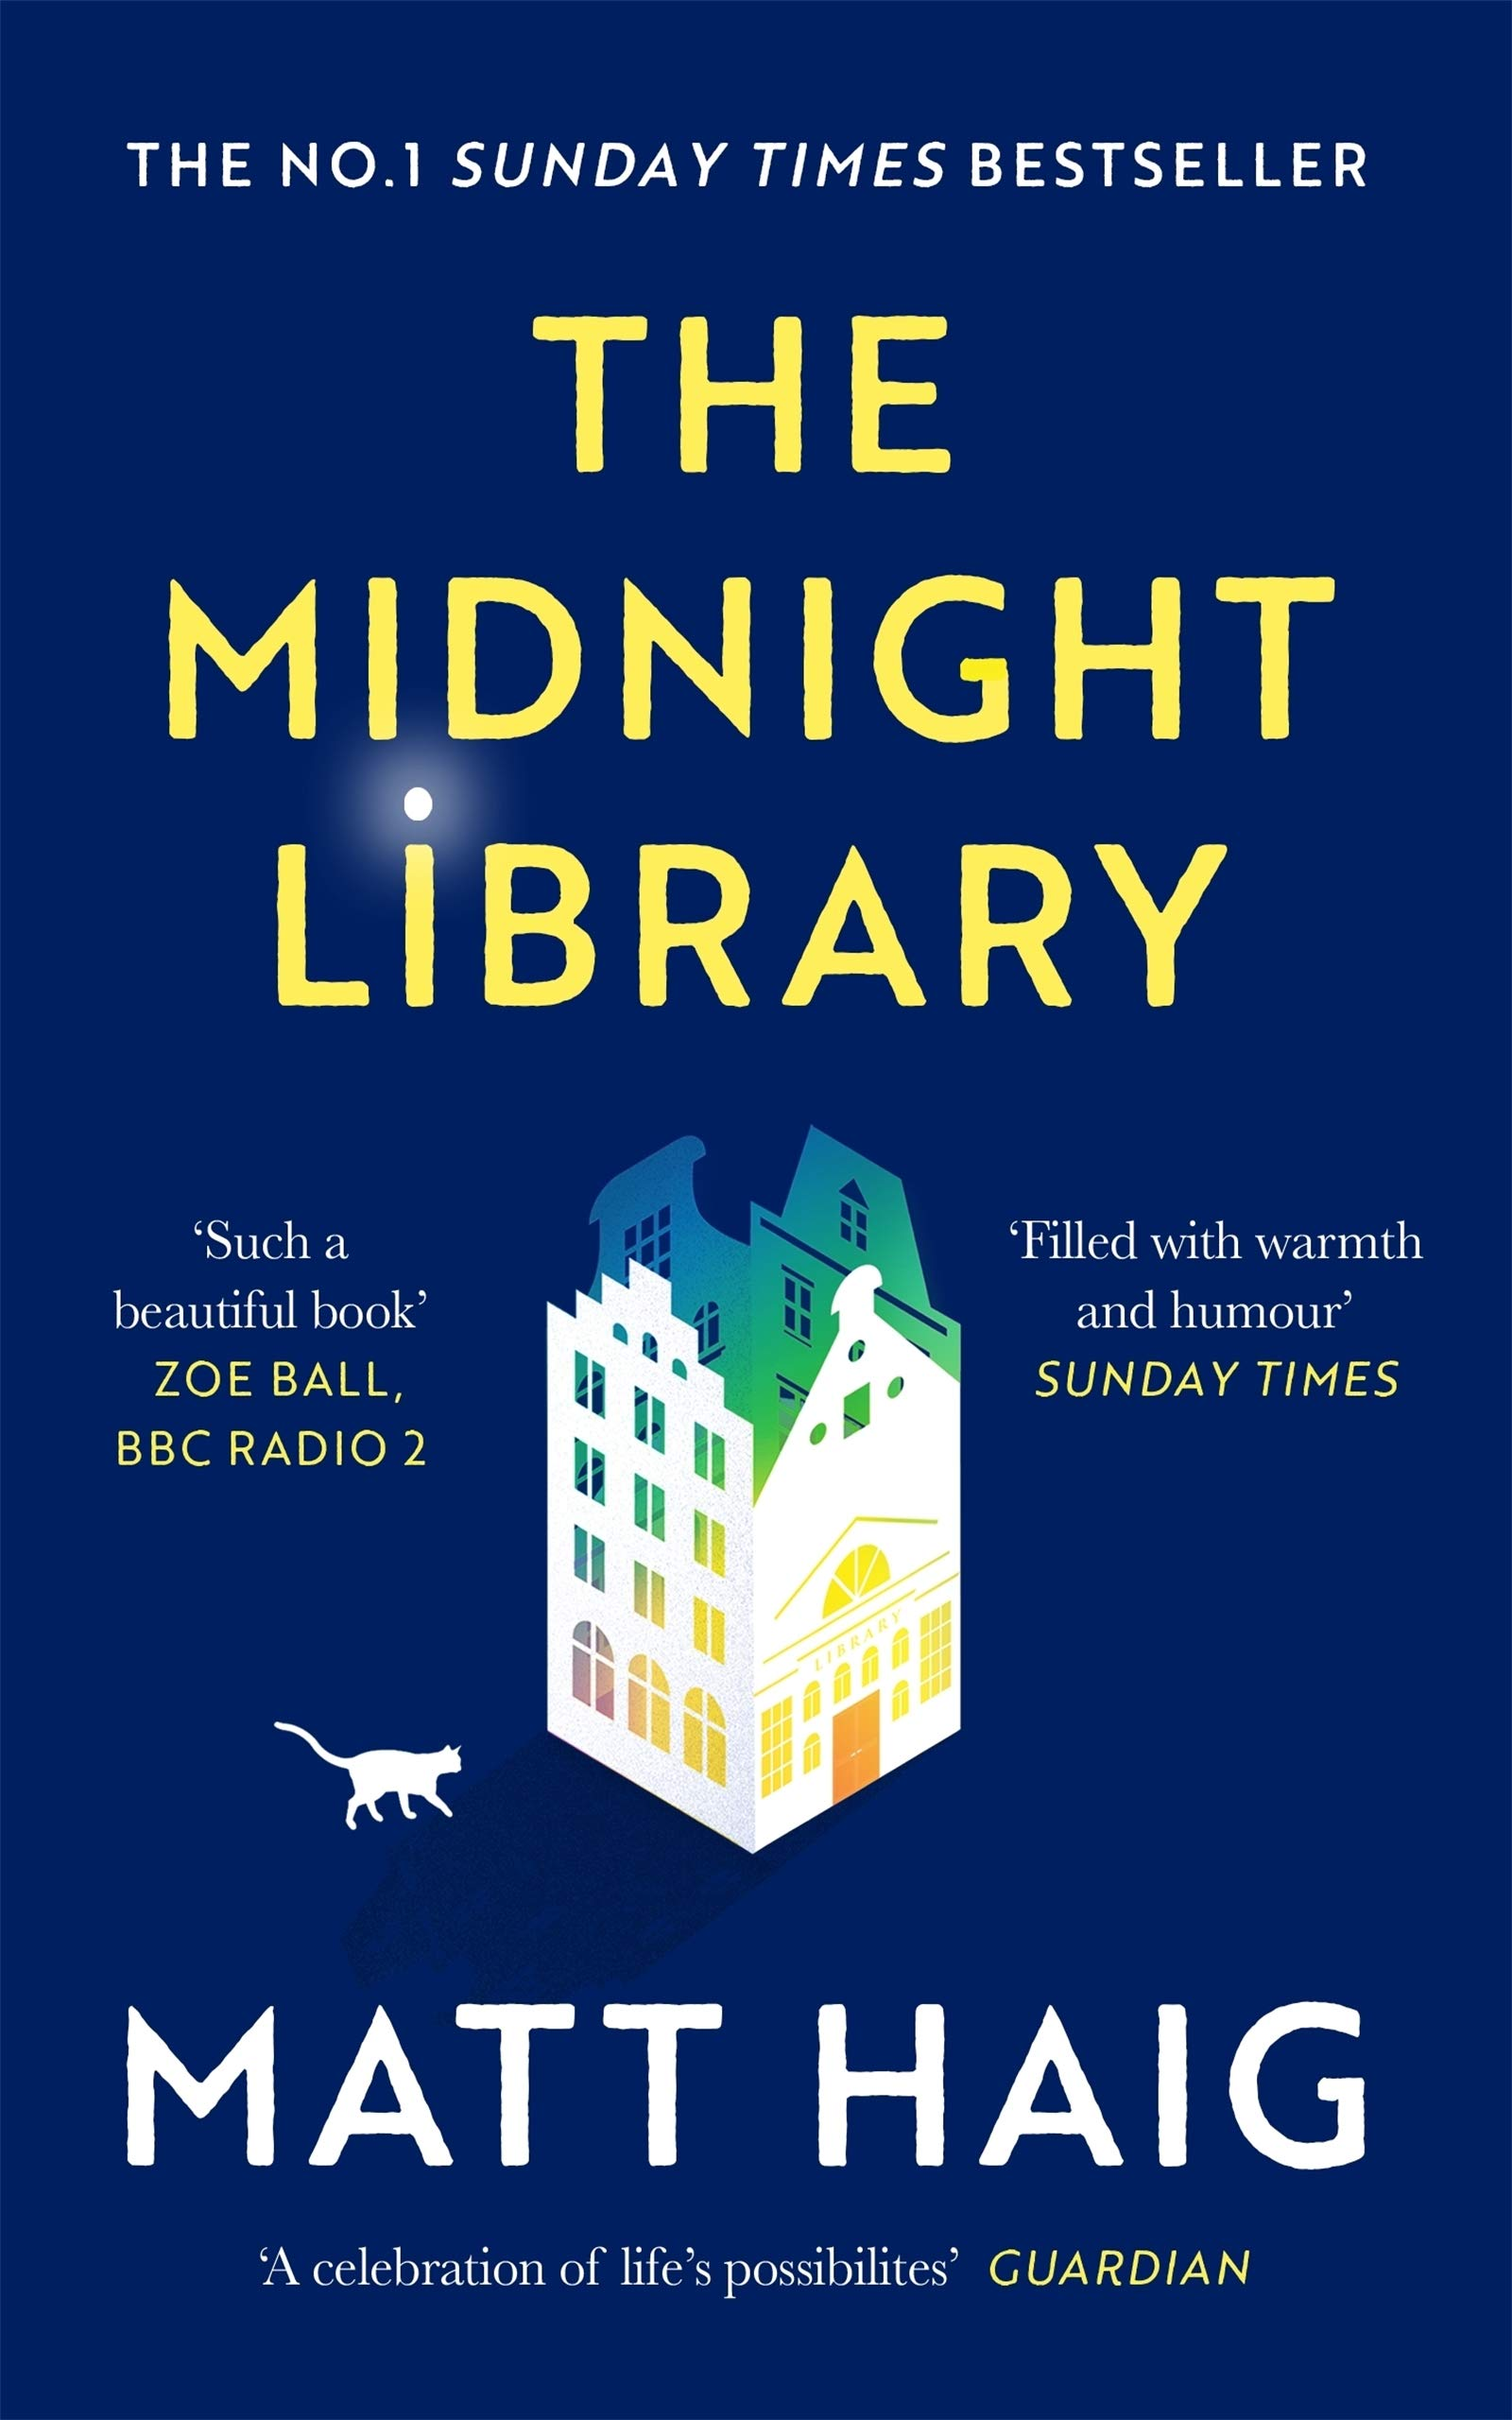 Cover image of The Midnight Library by Matt Haig